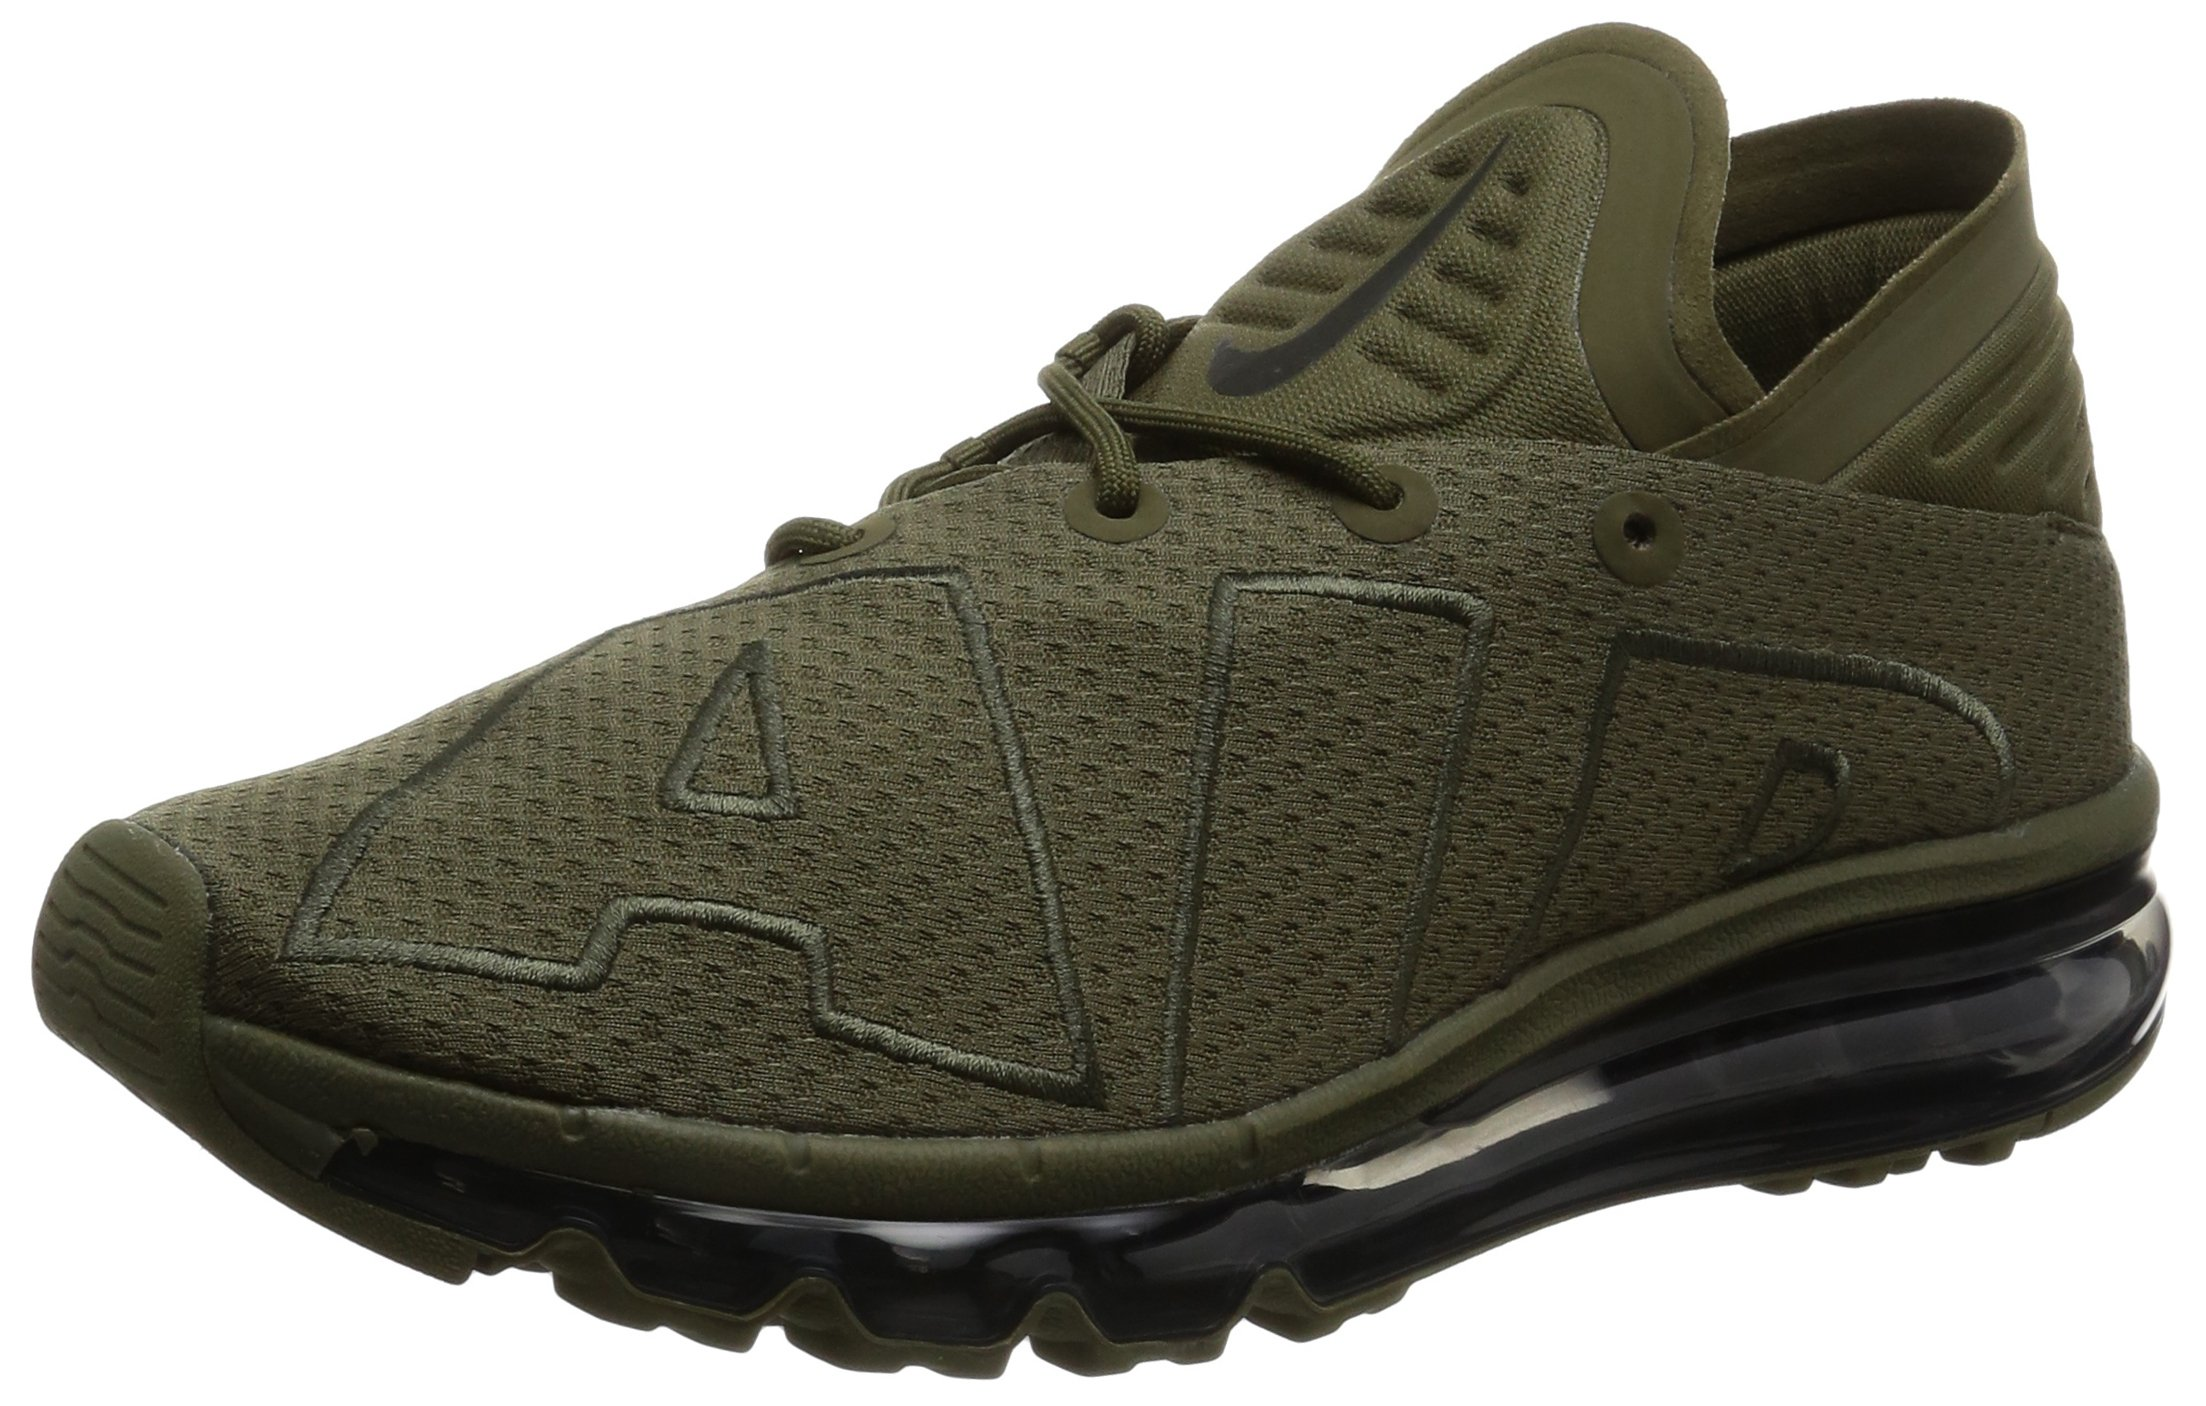 34706169f5 Galleon - Nike Mens Air Max Flair Low Top Lace Up Running, Medium Olive/ Sequoia, Size 10.0